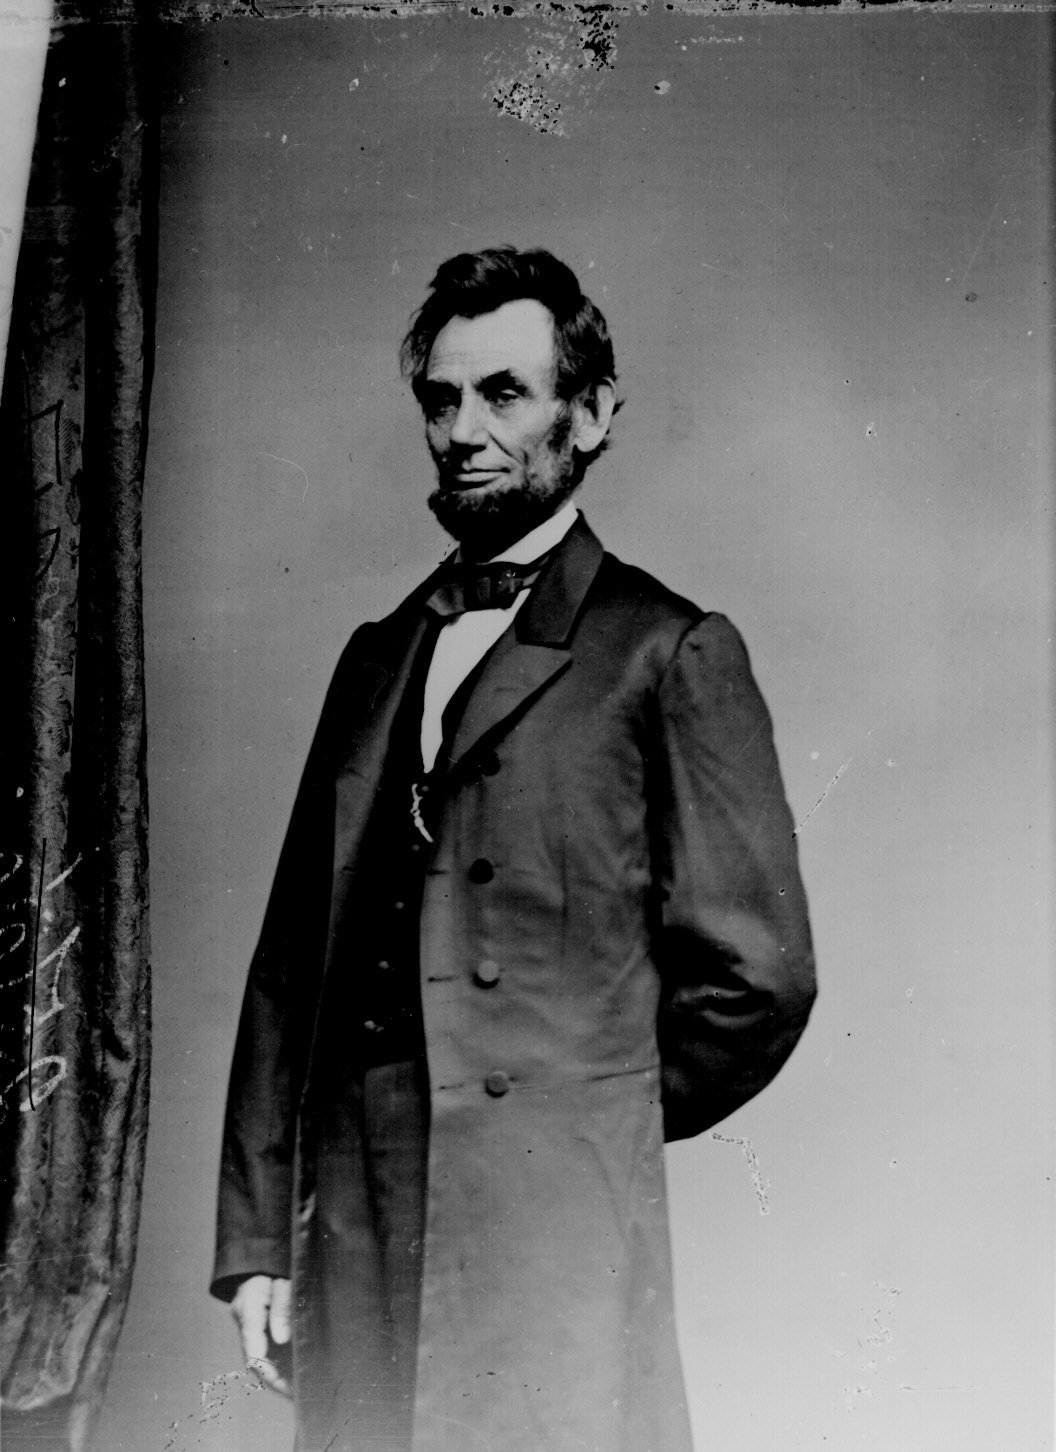 lincoln and the civil war We've just survived another election season, with the attendant (and often  hyperbolic) claims that the nation's future hinges on the outcome.